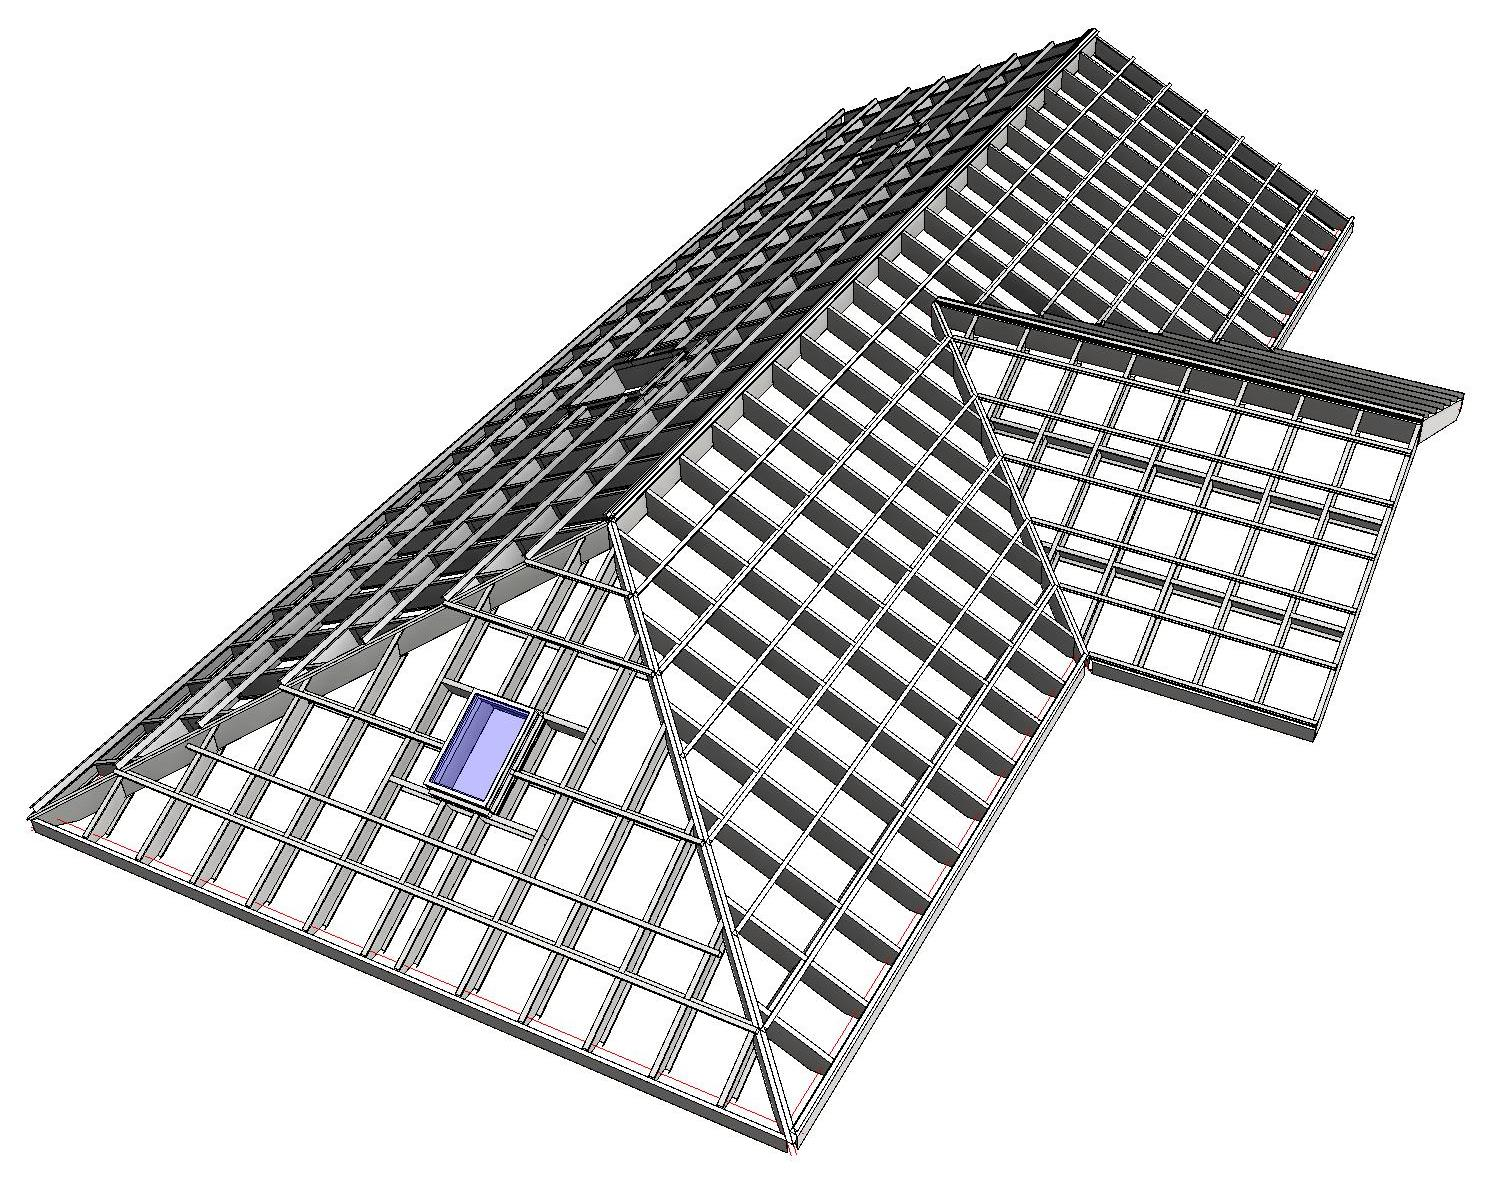 Metal framing roof agacad tools4bim for Roof drawing software